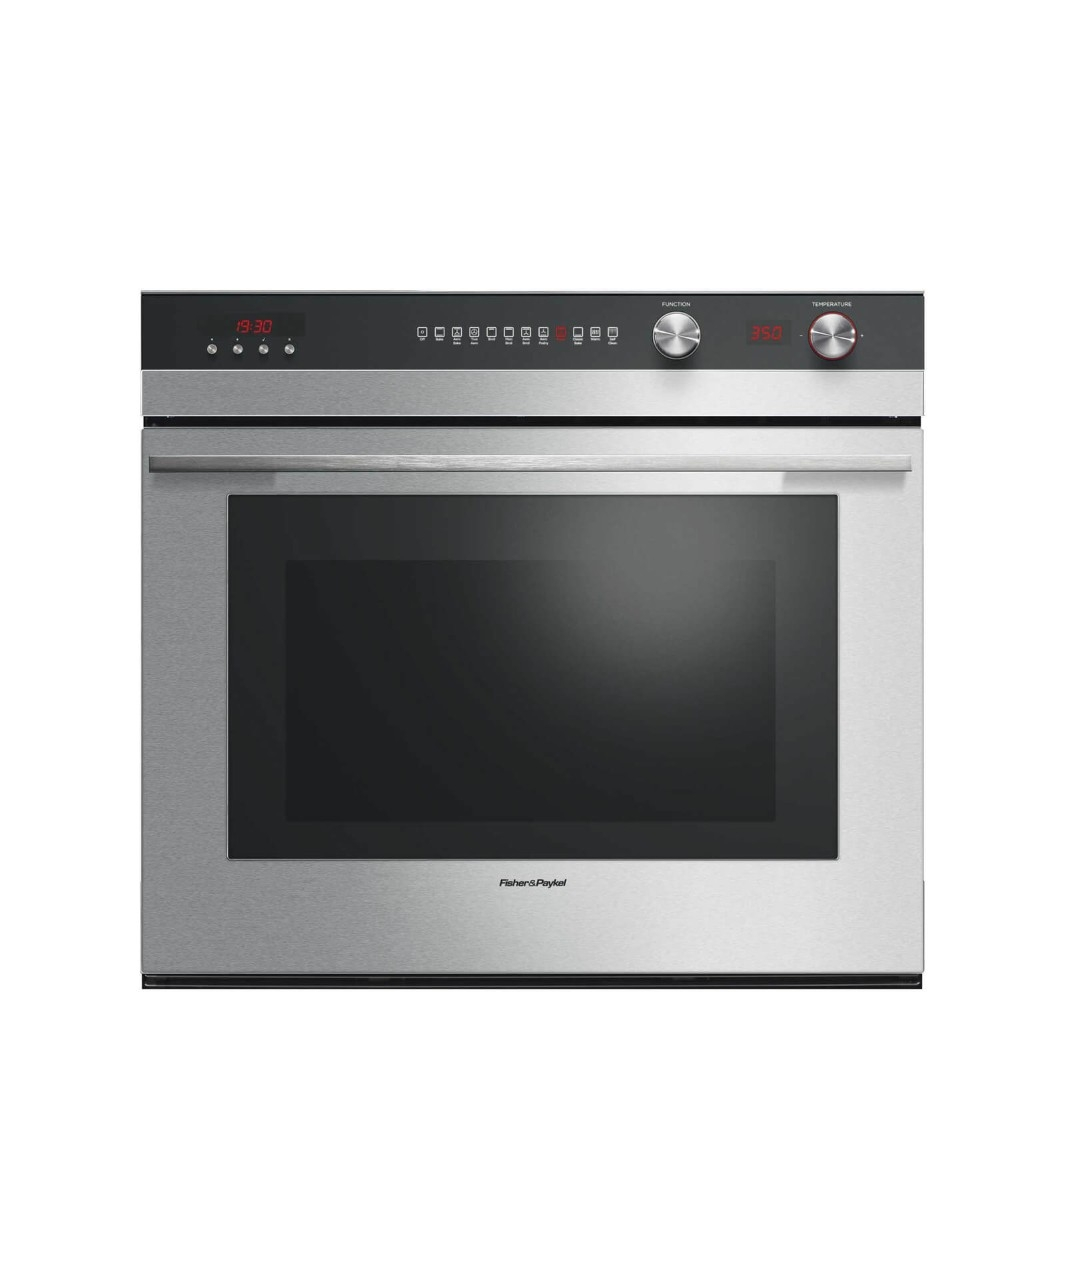 "Fisher and Paykel 30"" 11 Function Built-in Oven"